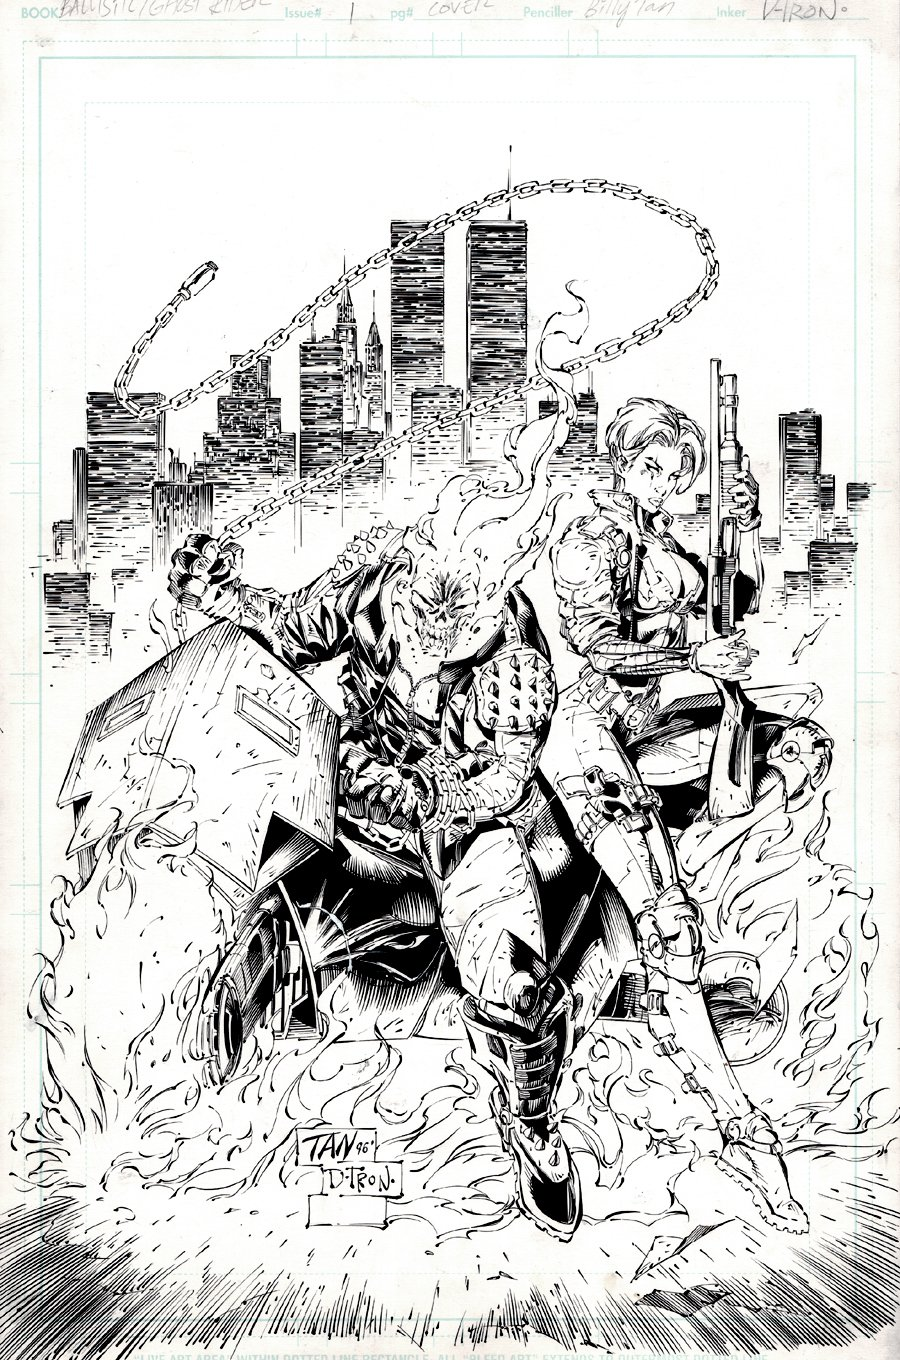 Ghost Rider / Ballistic #1 Cover (Superb first Issue Cover!) 1996